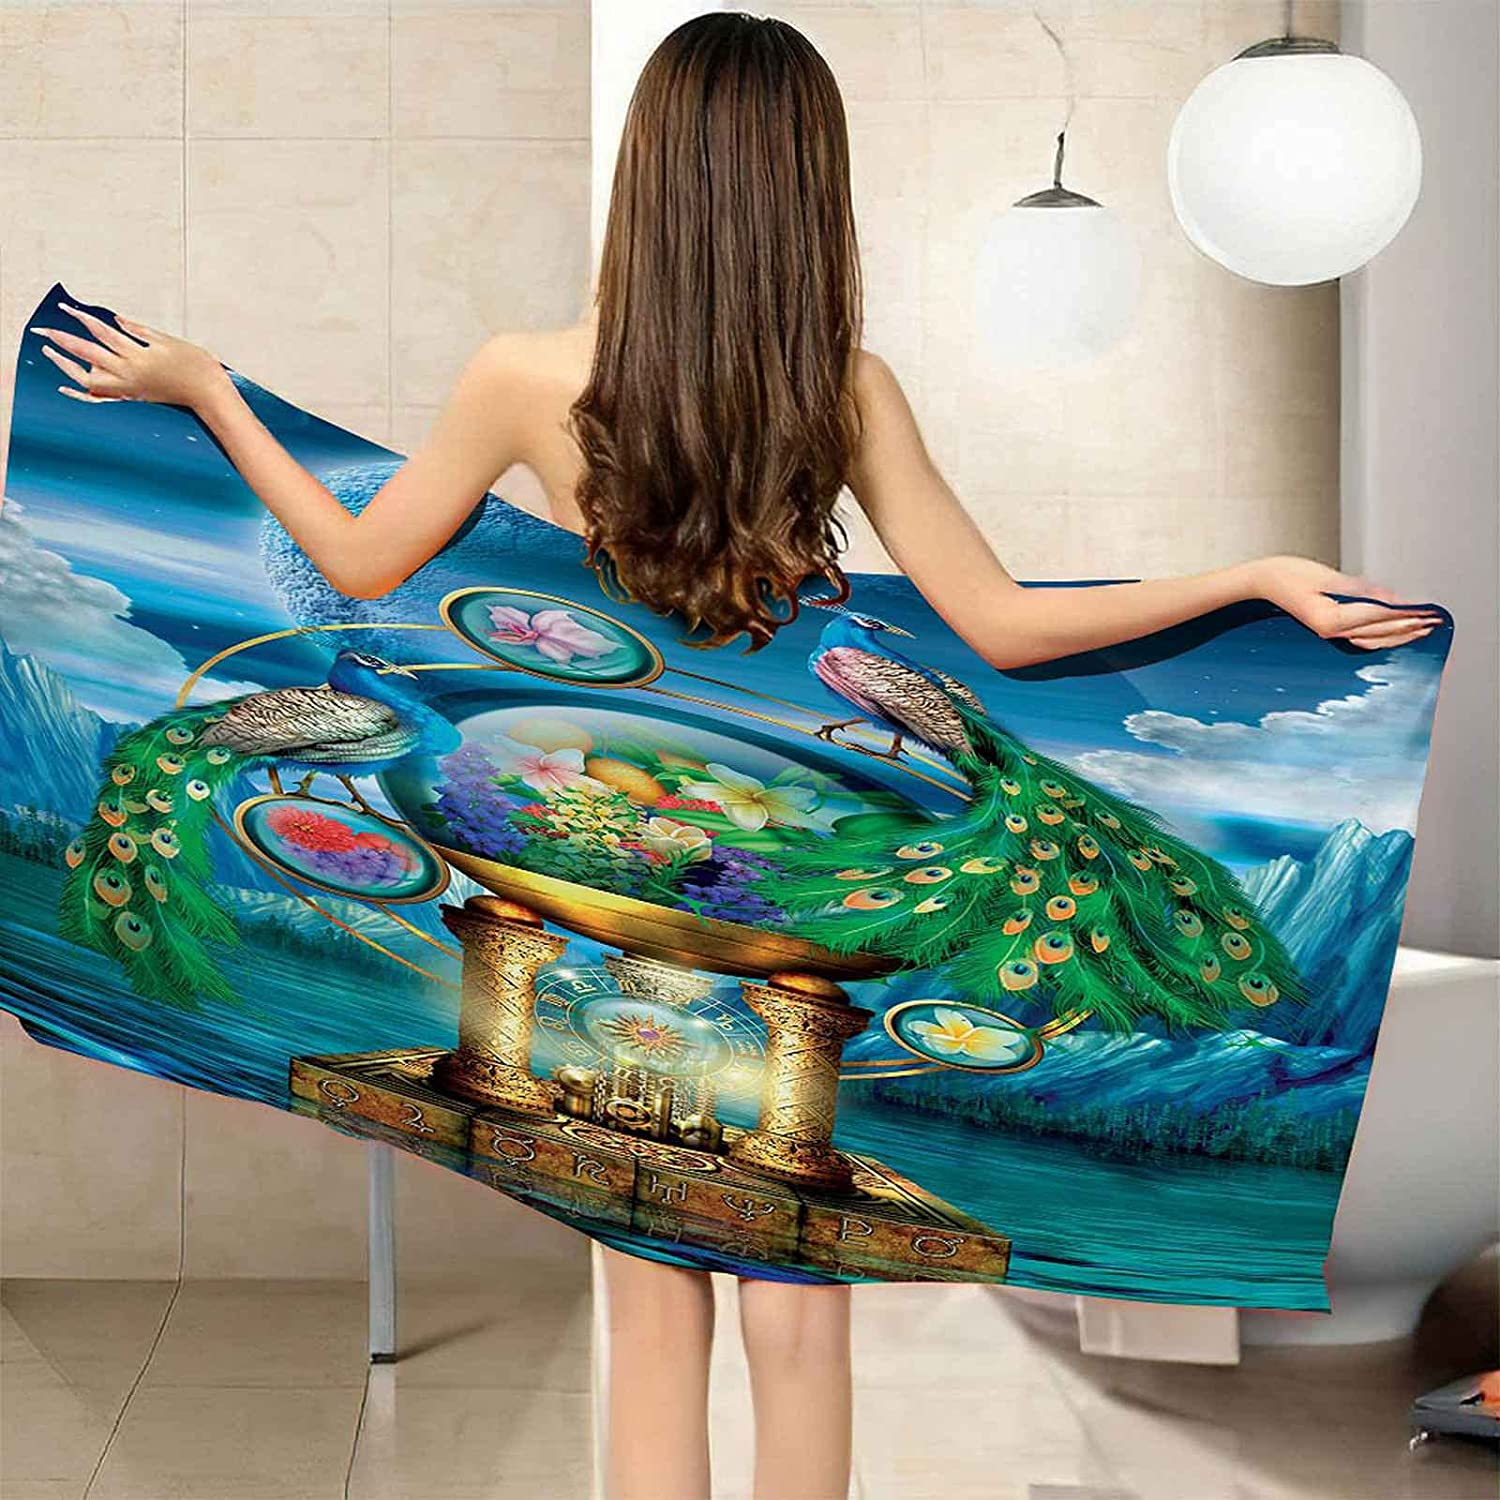 QFMMQI Microfiber Quick Drying Beach Super Complete Free Shipping Perso Absorbent New product!! Towel